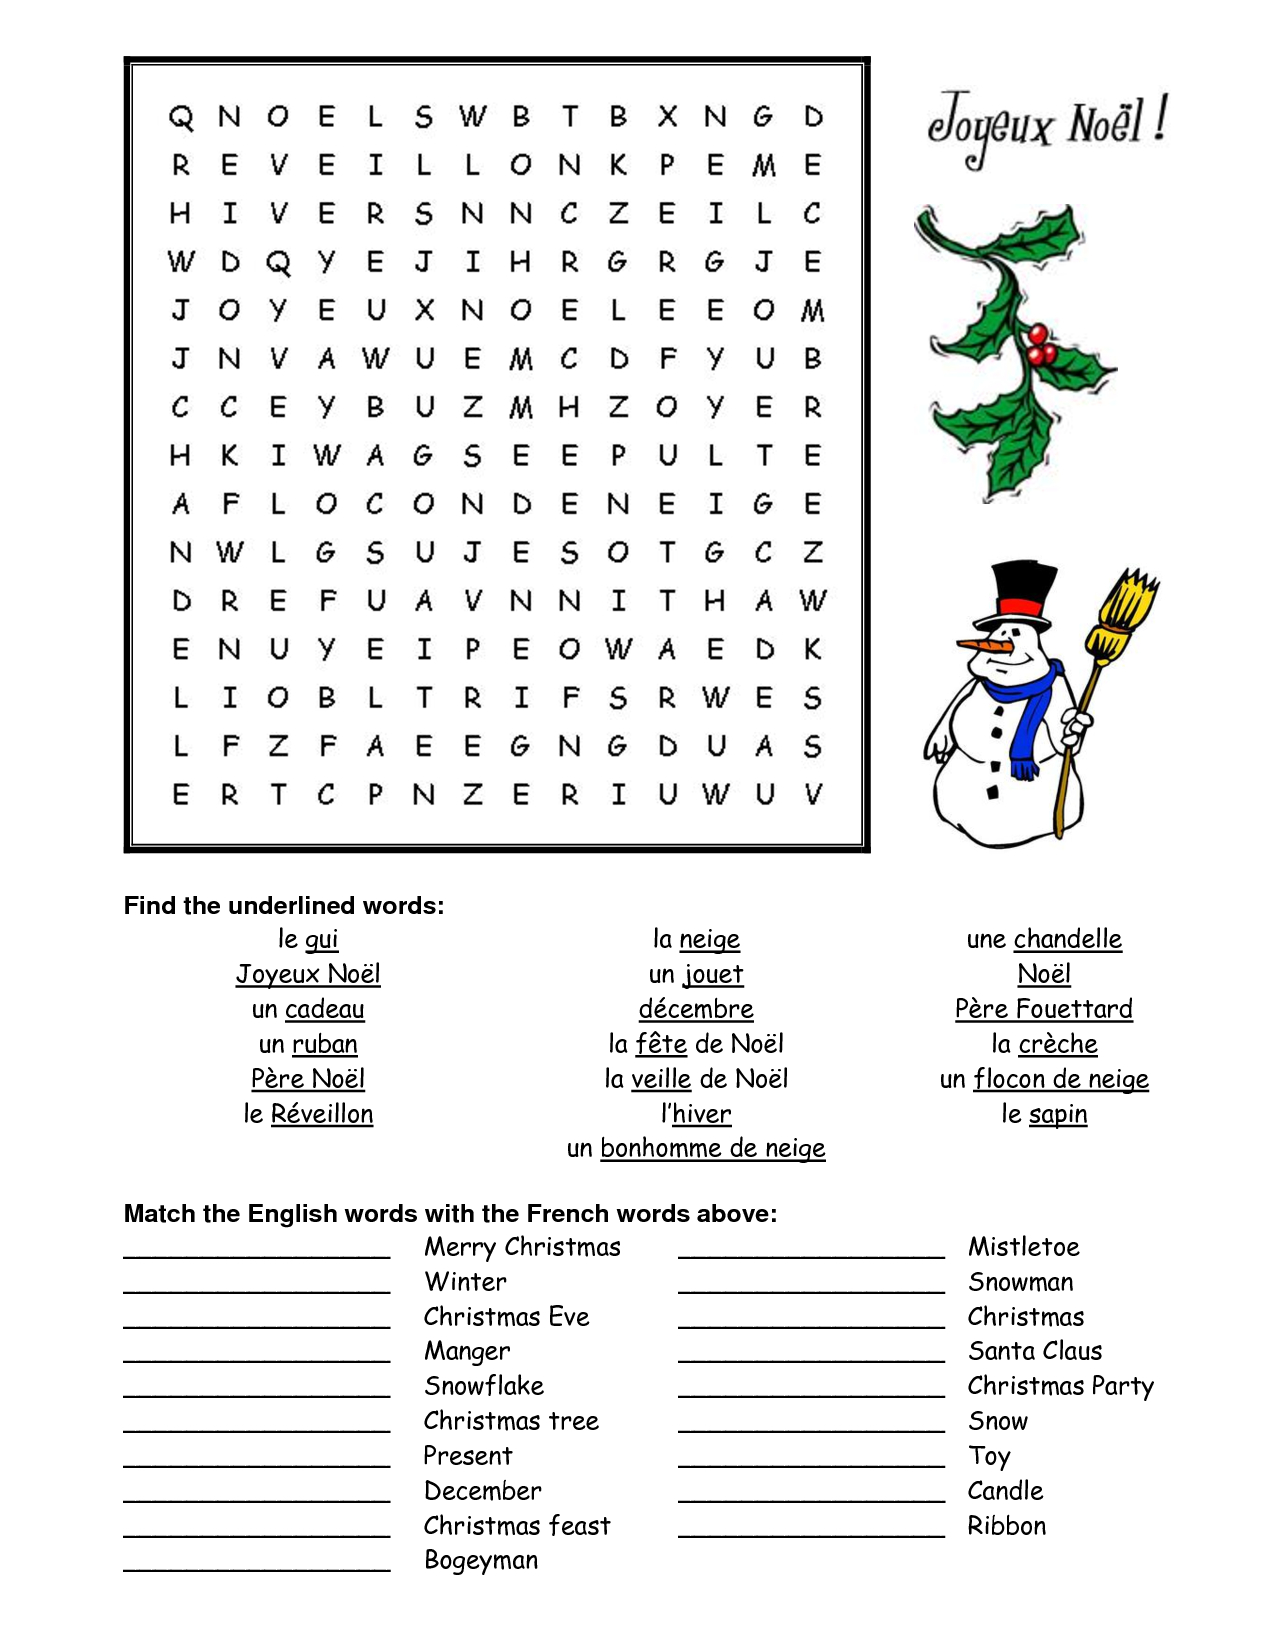 French Christmas Word Search - Google Search | French - Christmas - Printable French Puzzle